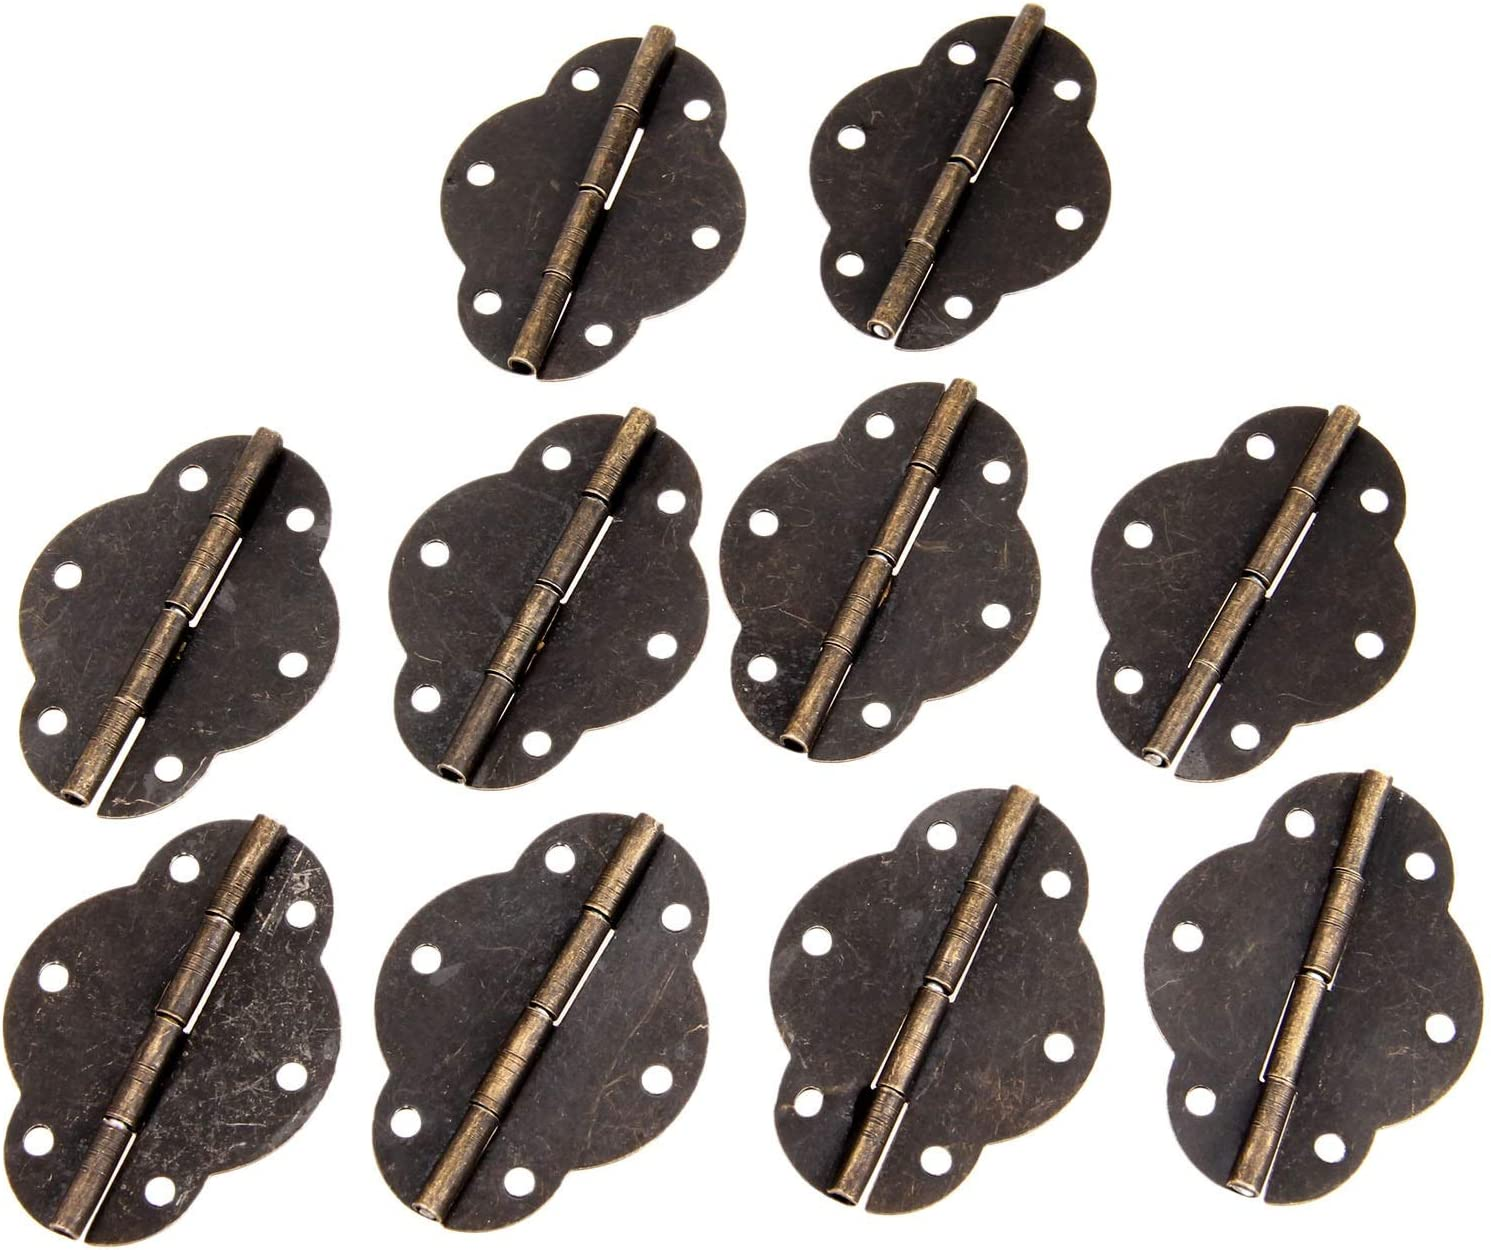 10Pcs 4634mm Antique Purchase Cabinet Very popular Hinges Door Gift Hinge Je Butt Wood